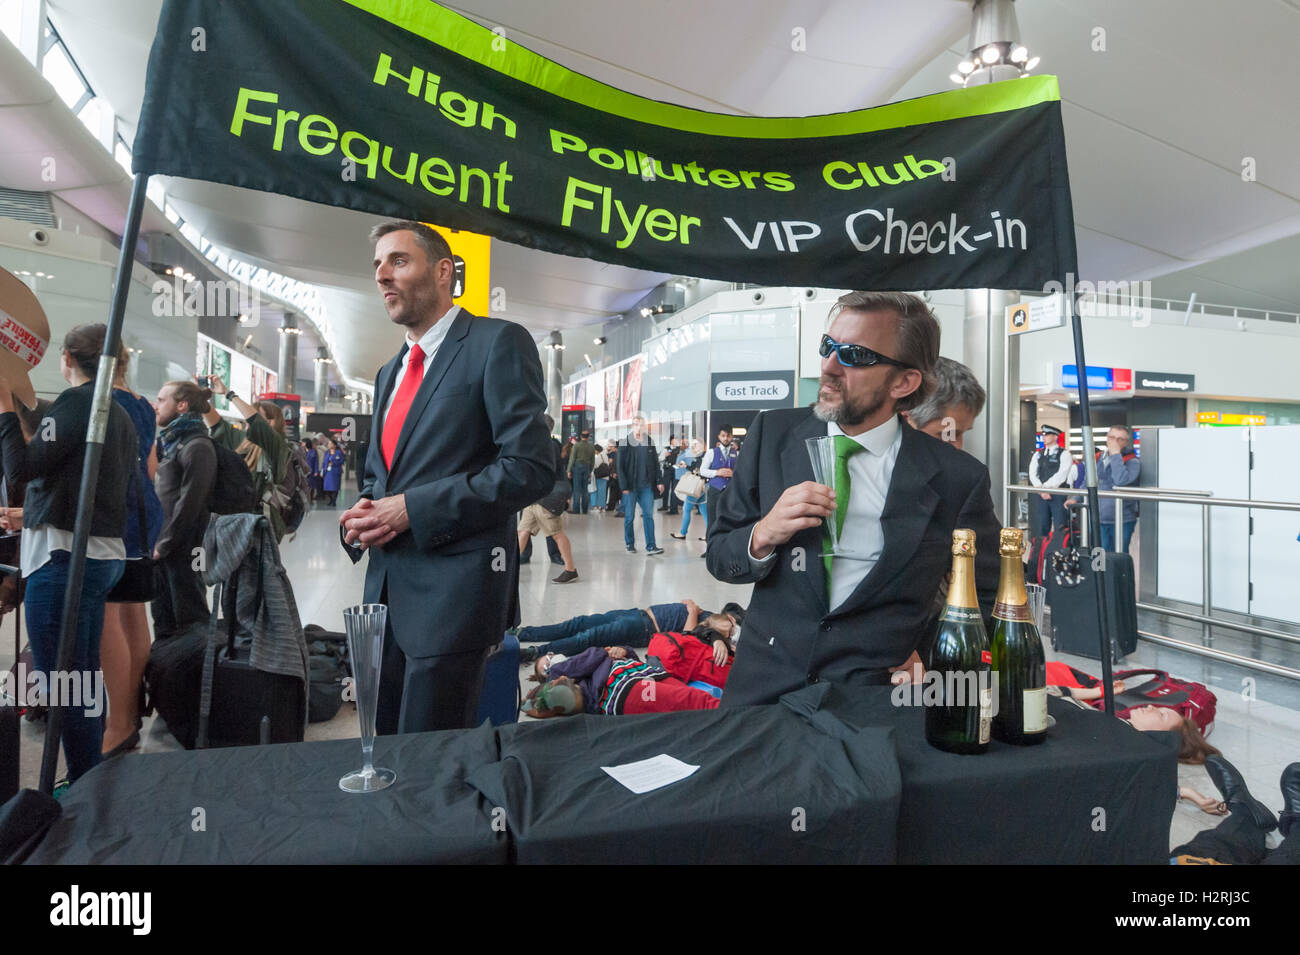 Heathrow, London, UK. 1st October 2016. The  'High Polluters Club Frequent Flyer VIP Check-in' at the flash - Stock Image